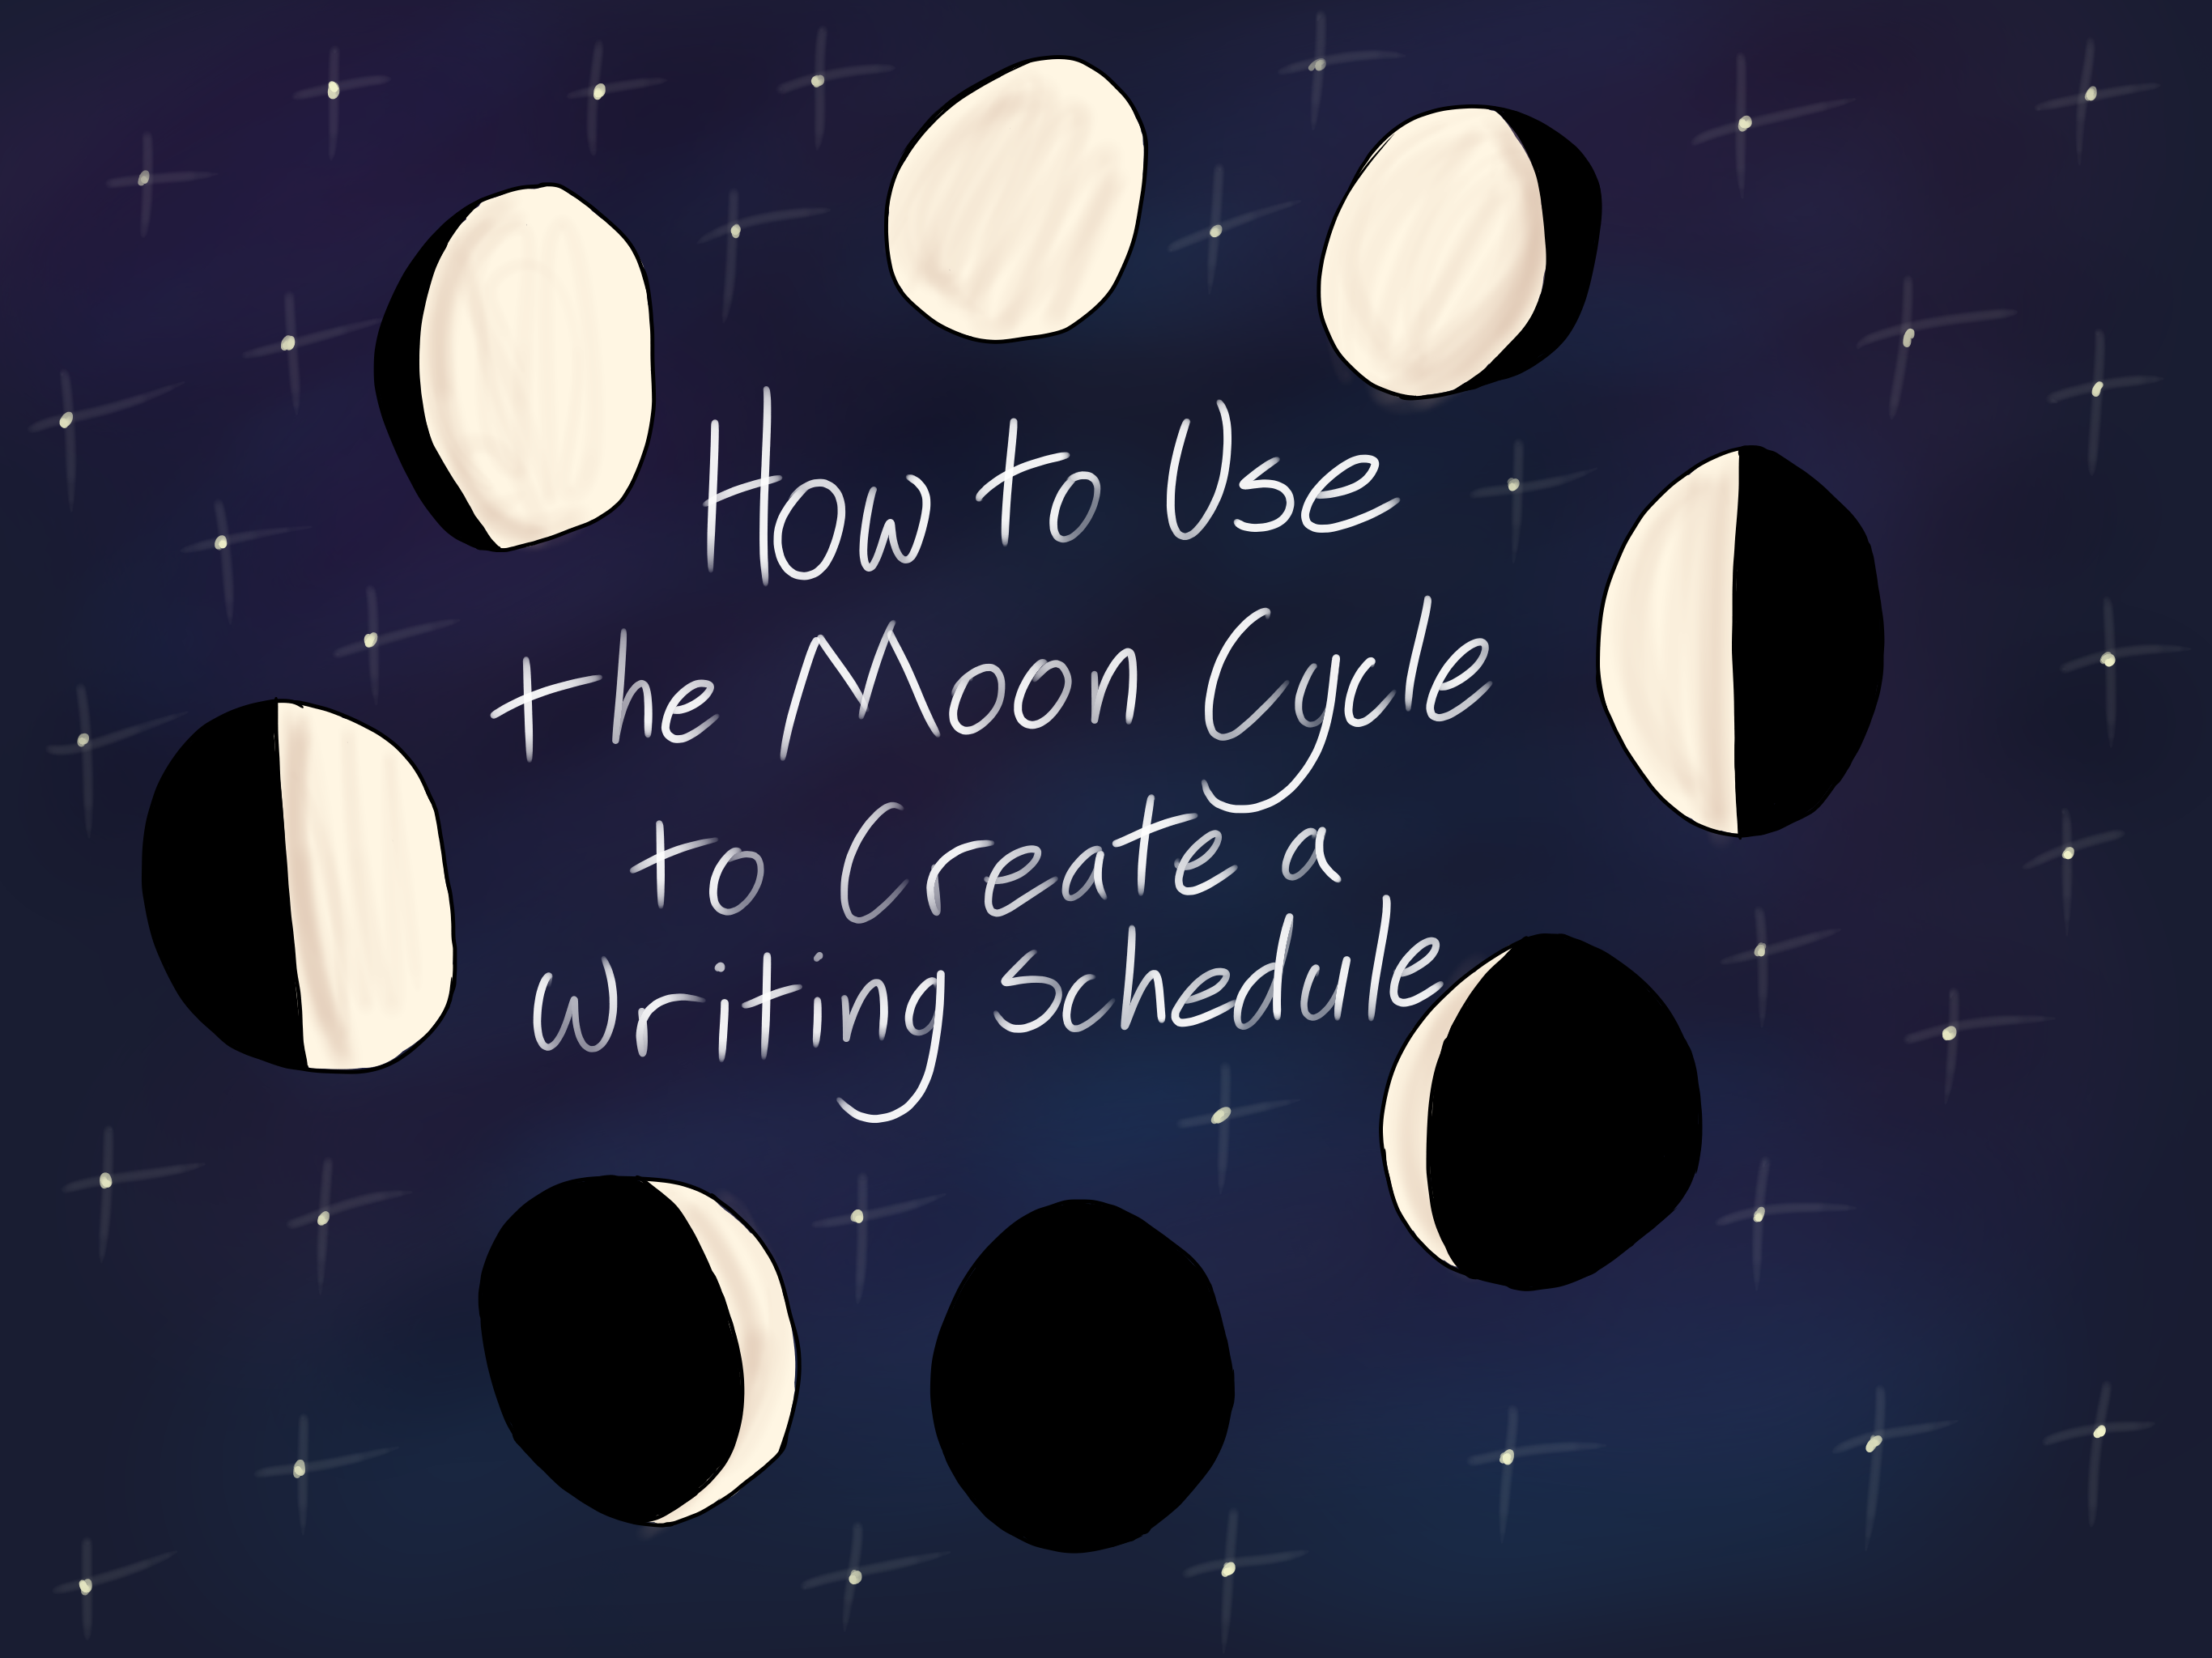 How to Use the Moon Cycle to Create a Writing Schedule (art by @peachyartist (that's me!))